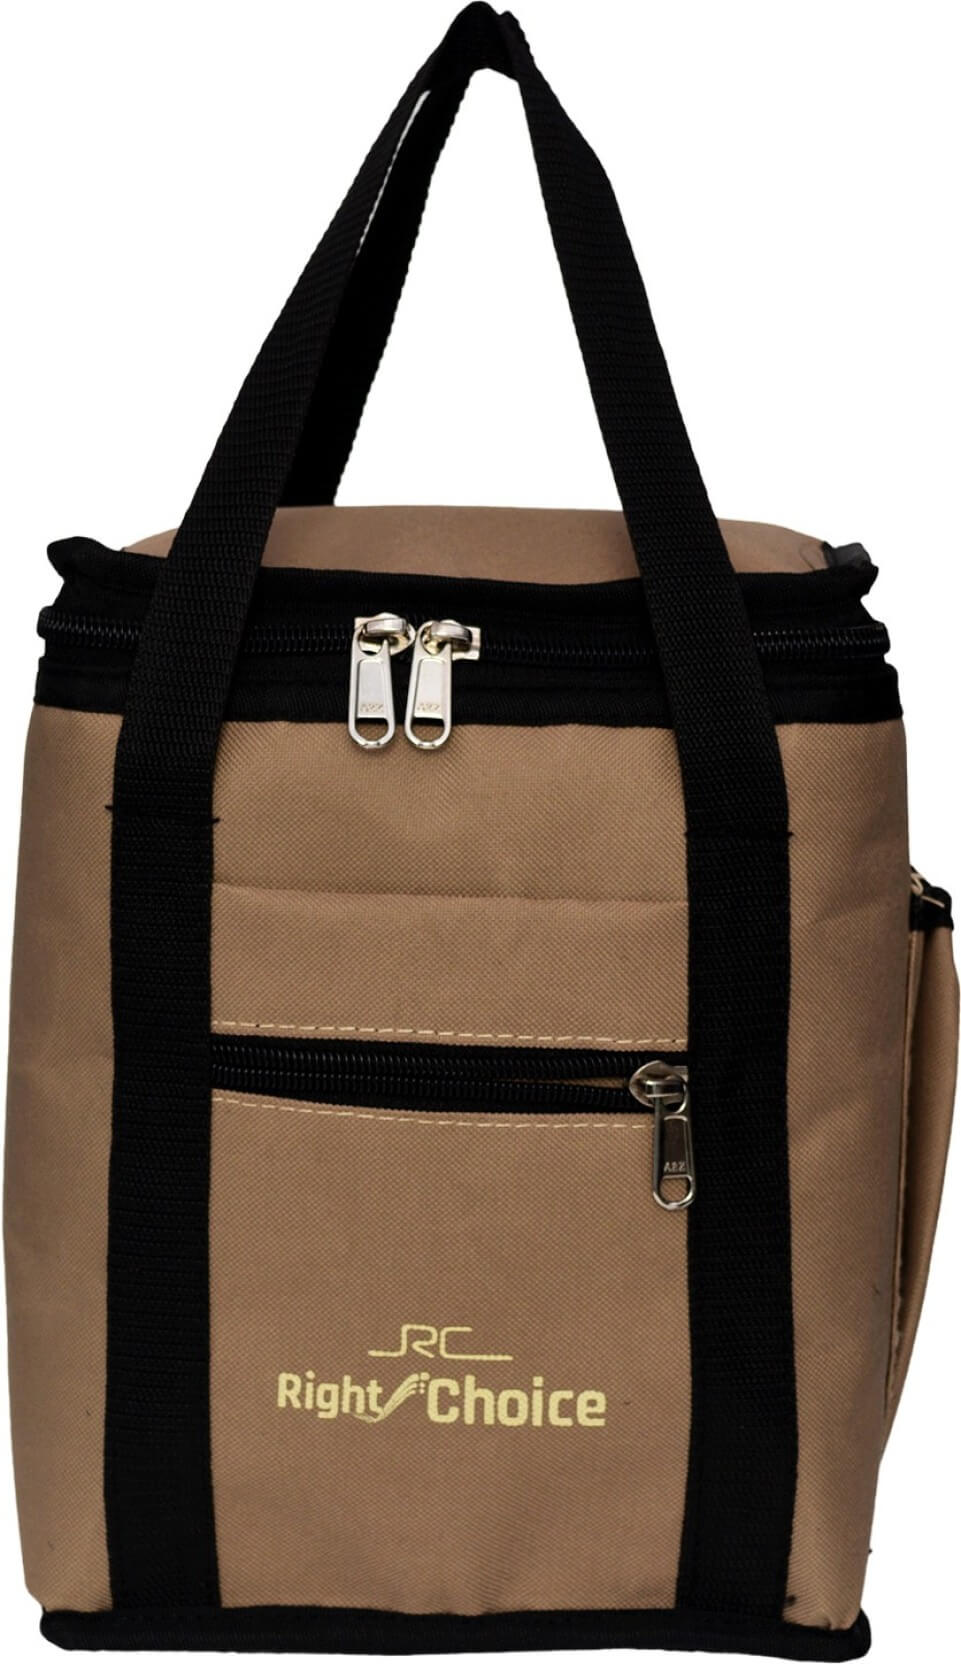 Right Choice Lunch Tiffin Bag Lunch Bag  (Beige, 2 L)